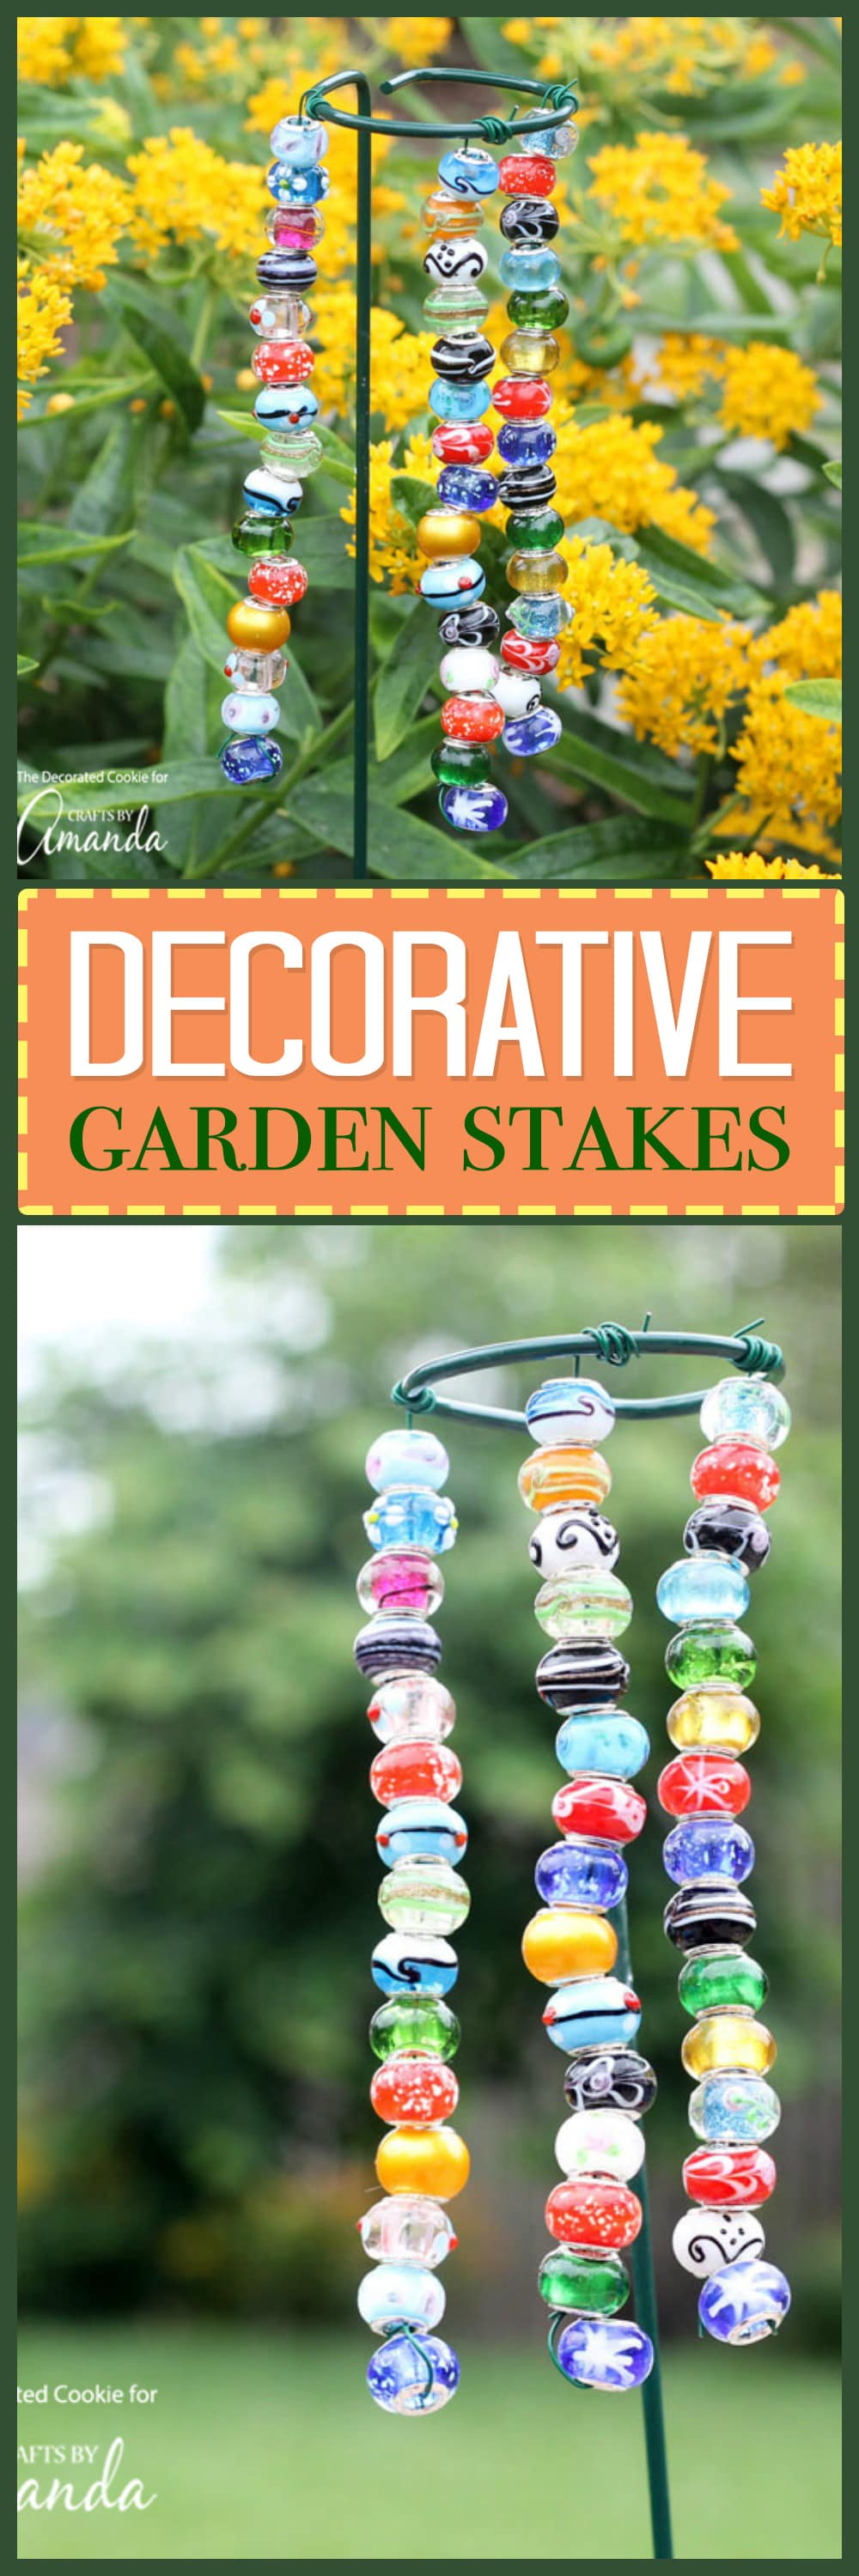 Decorative Garden Stakes: a pretty and easy garden DIY project!